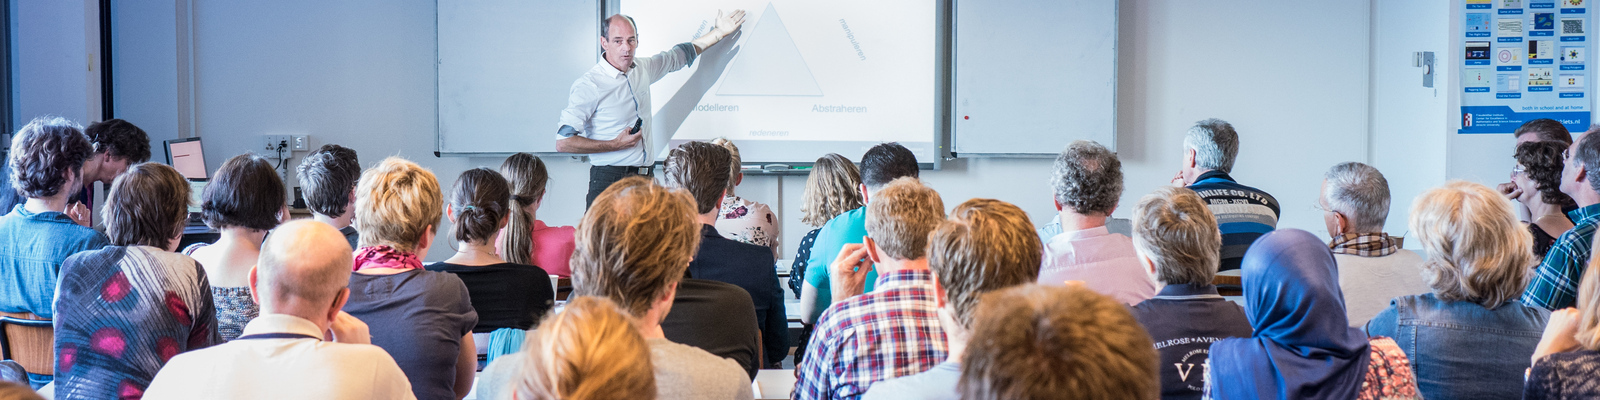 U-Talent conferentie - 16 april 2019